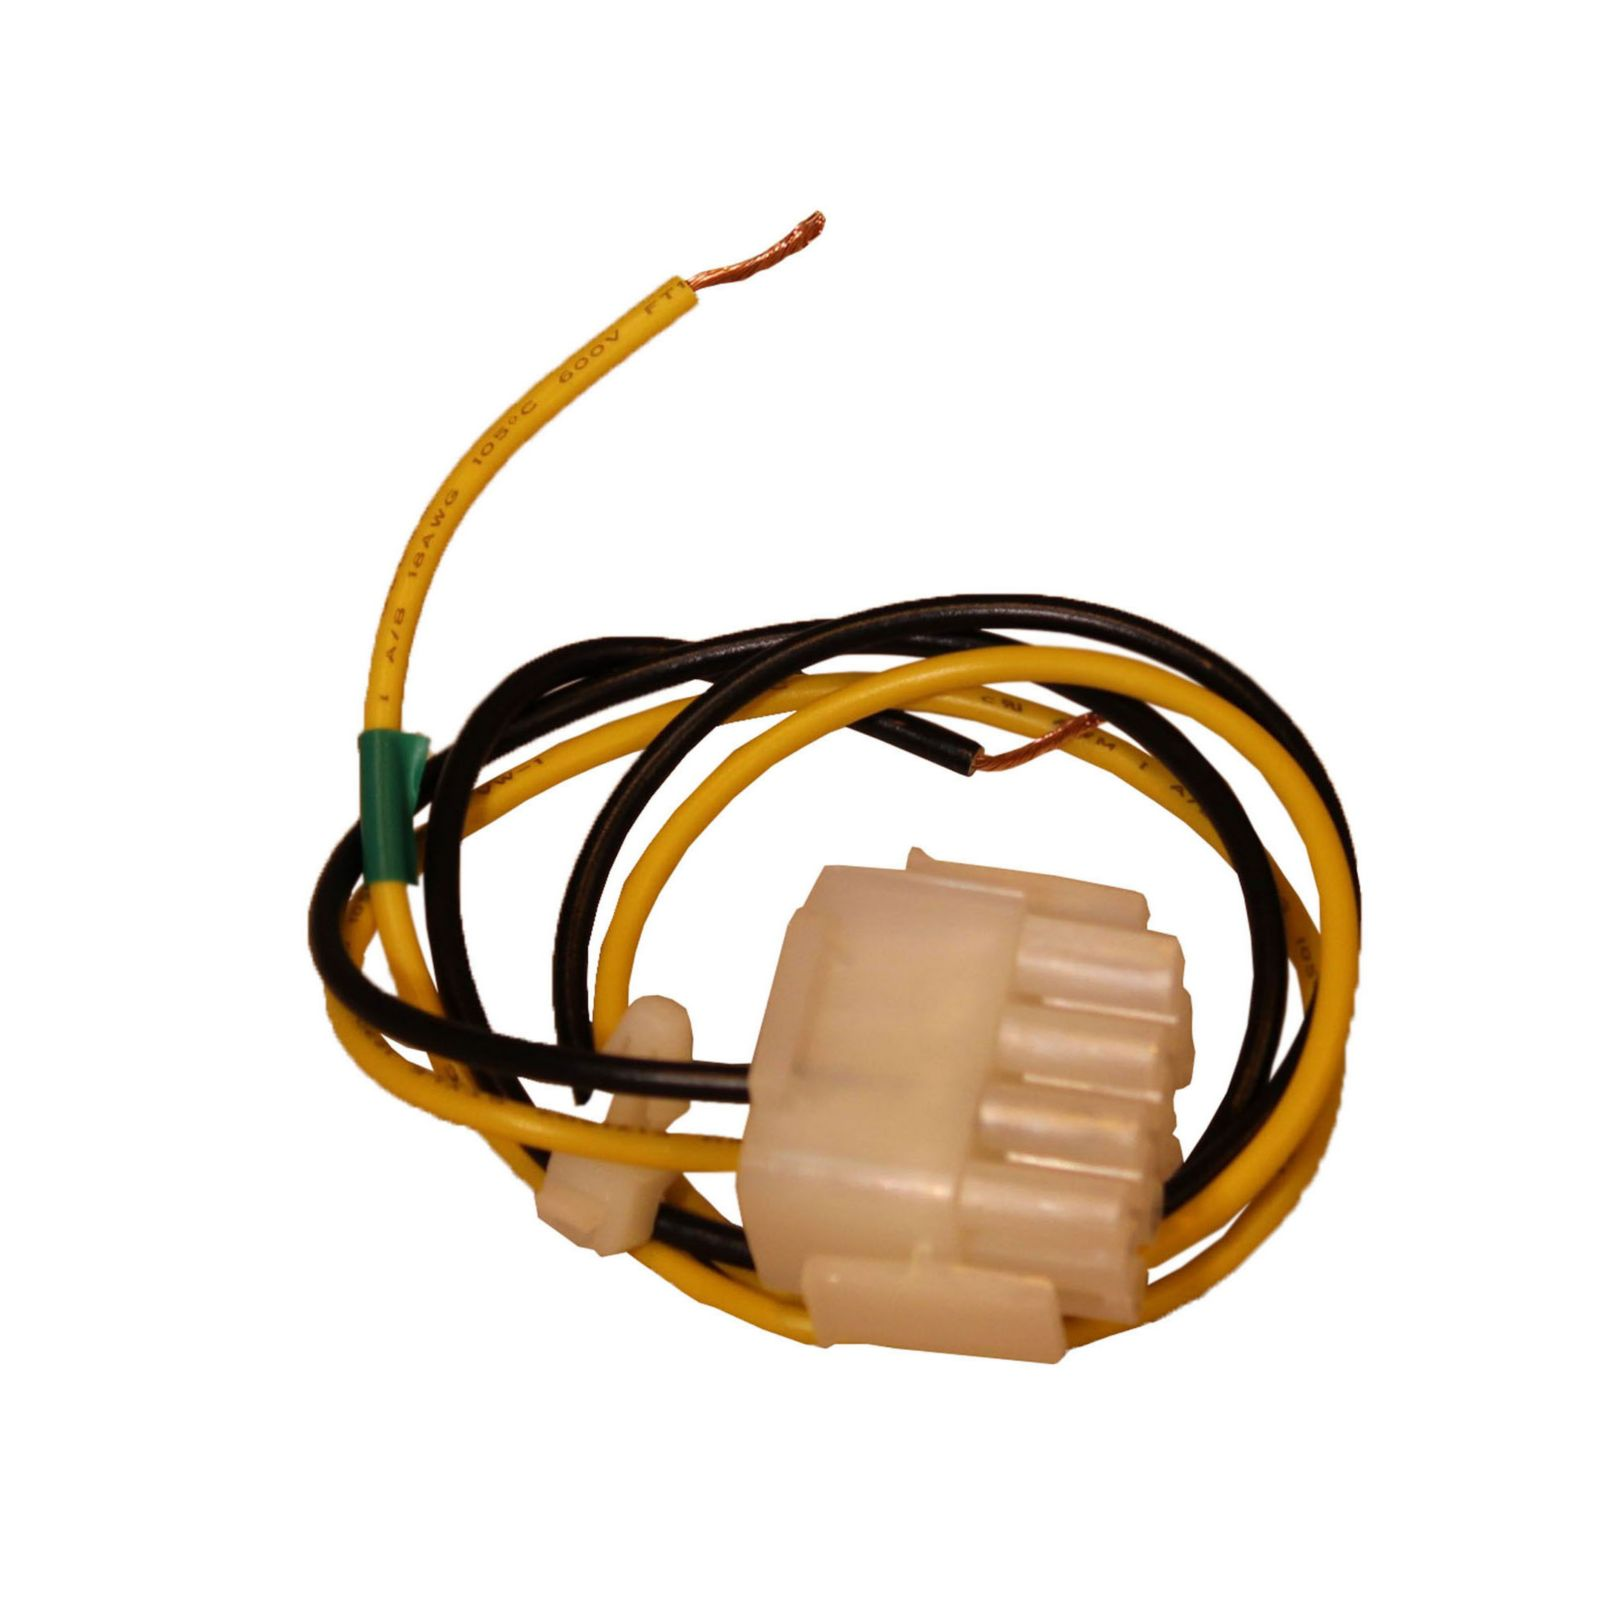 RCD Parts 322027-701 Terminal Leads / Wiring Harness / Plugs ... on